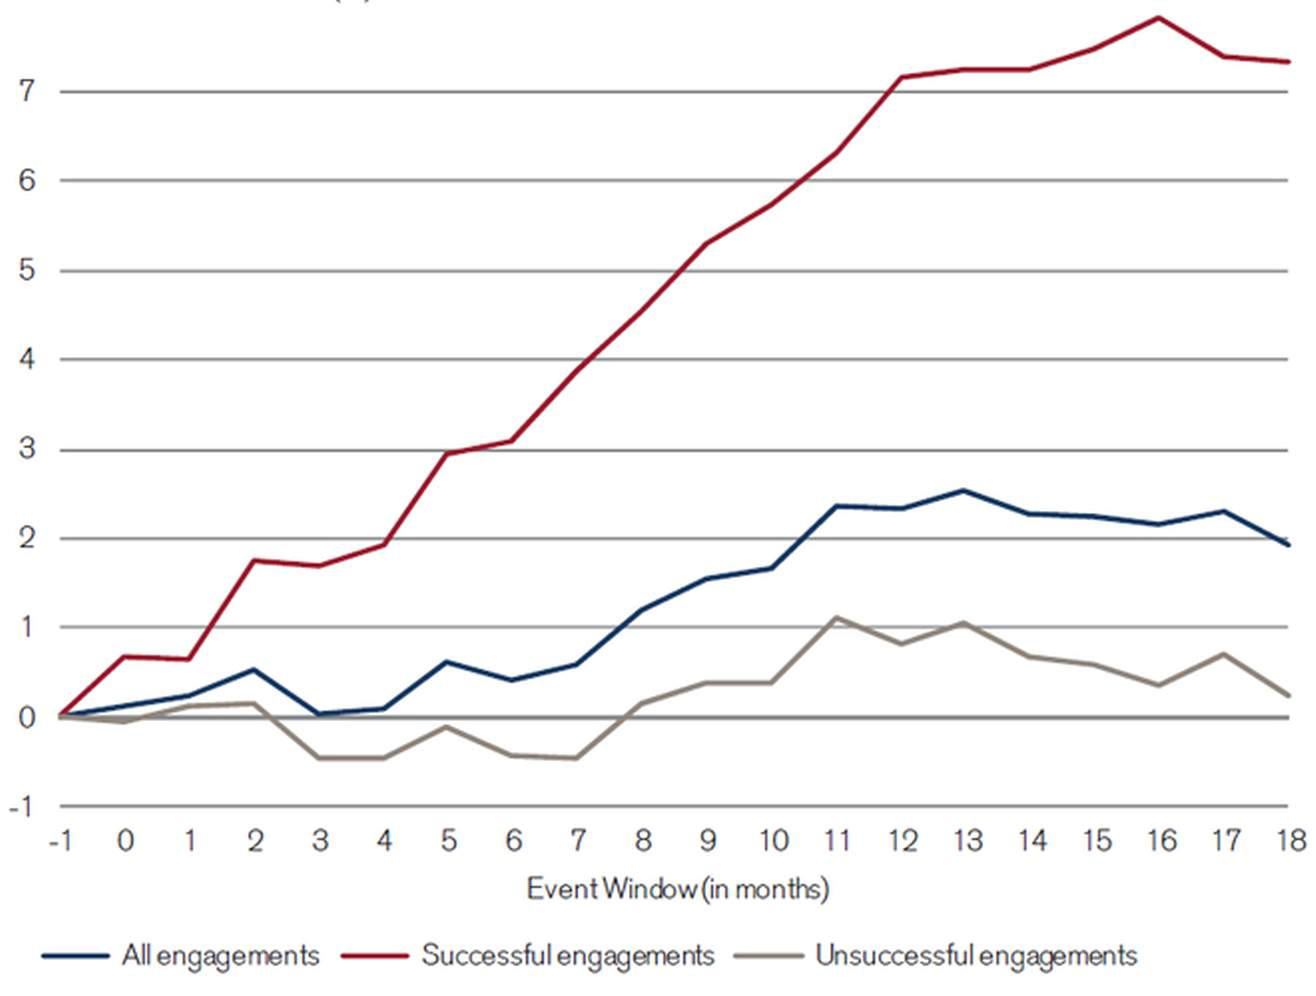 Cumulative abnormal returns (CARs) after engagement